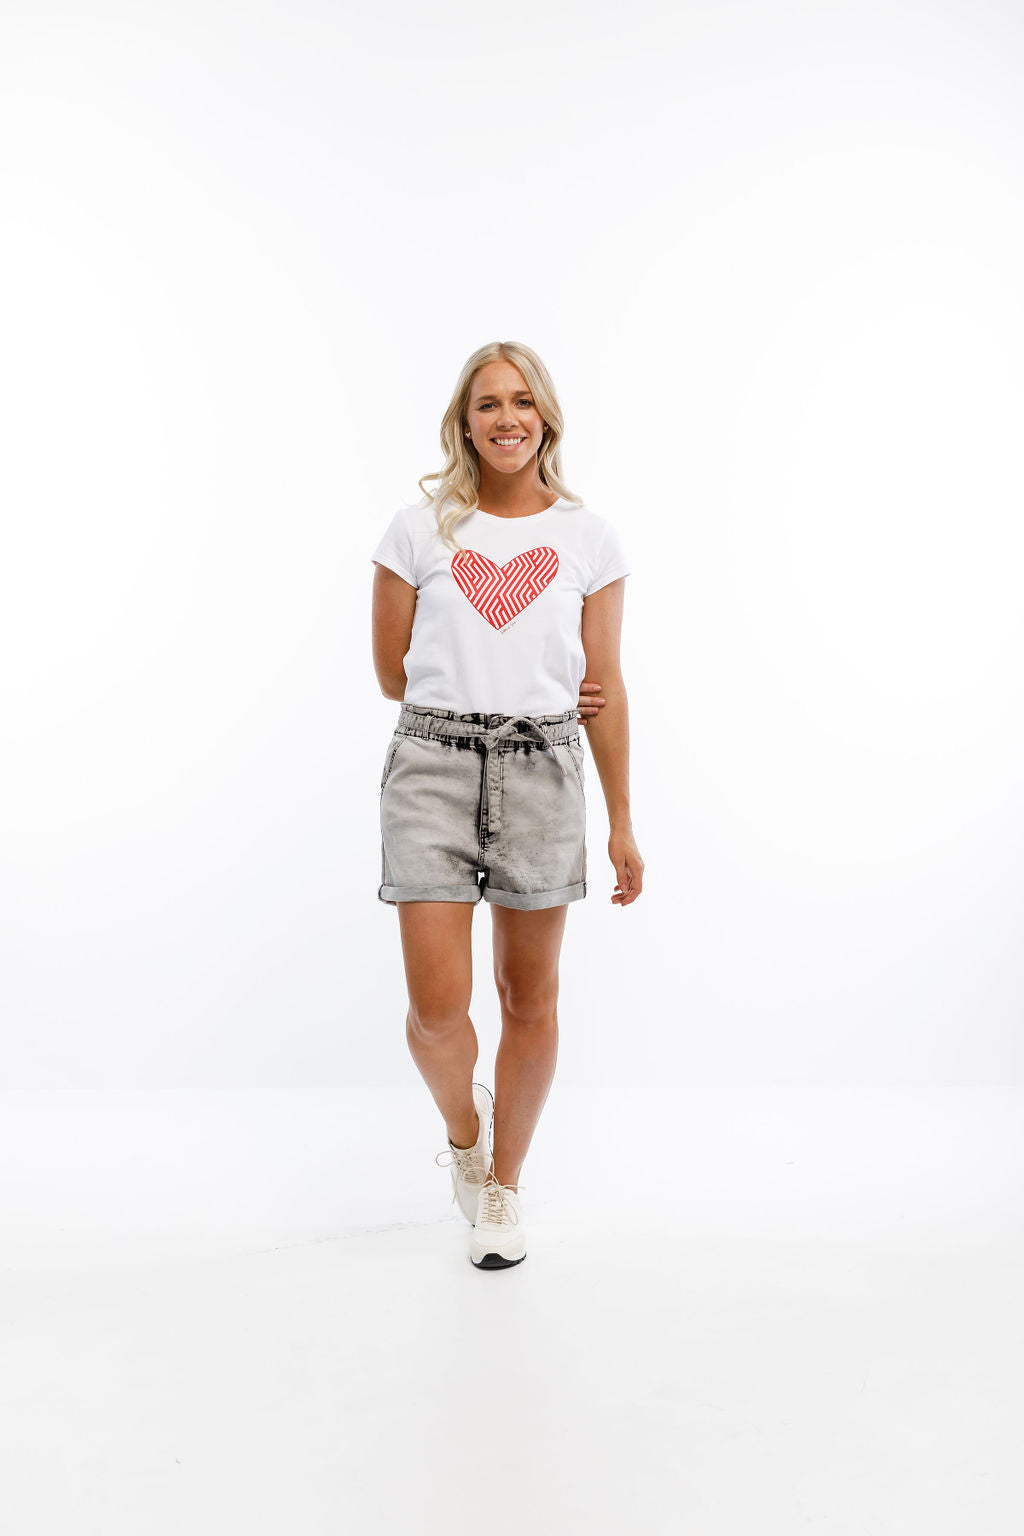 TEE - White with Pink Carnival Heart